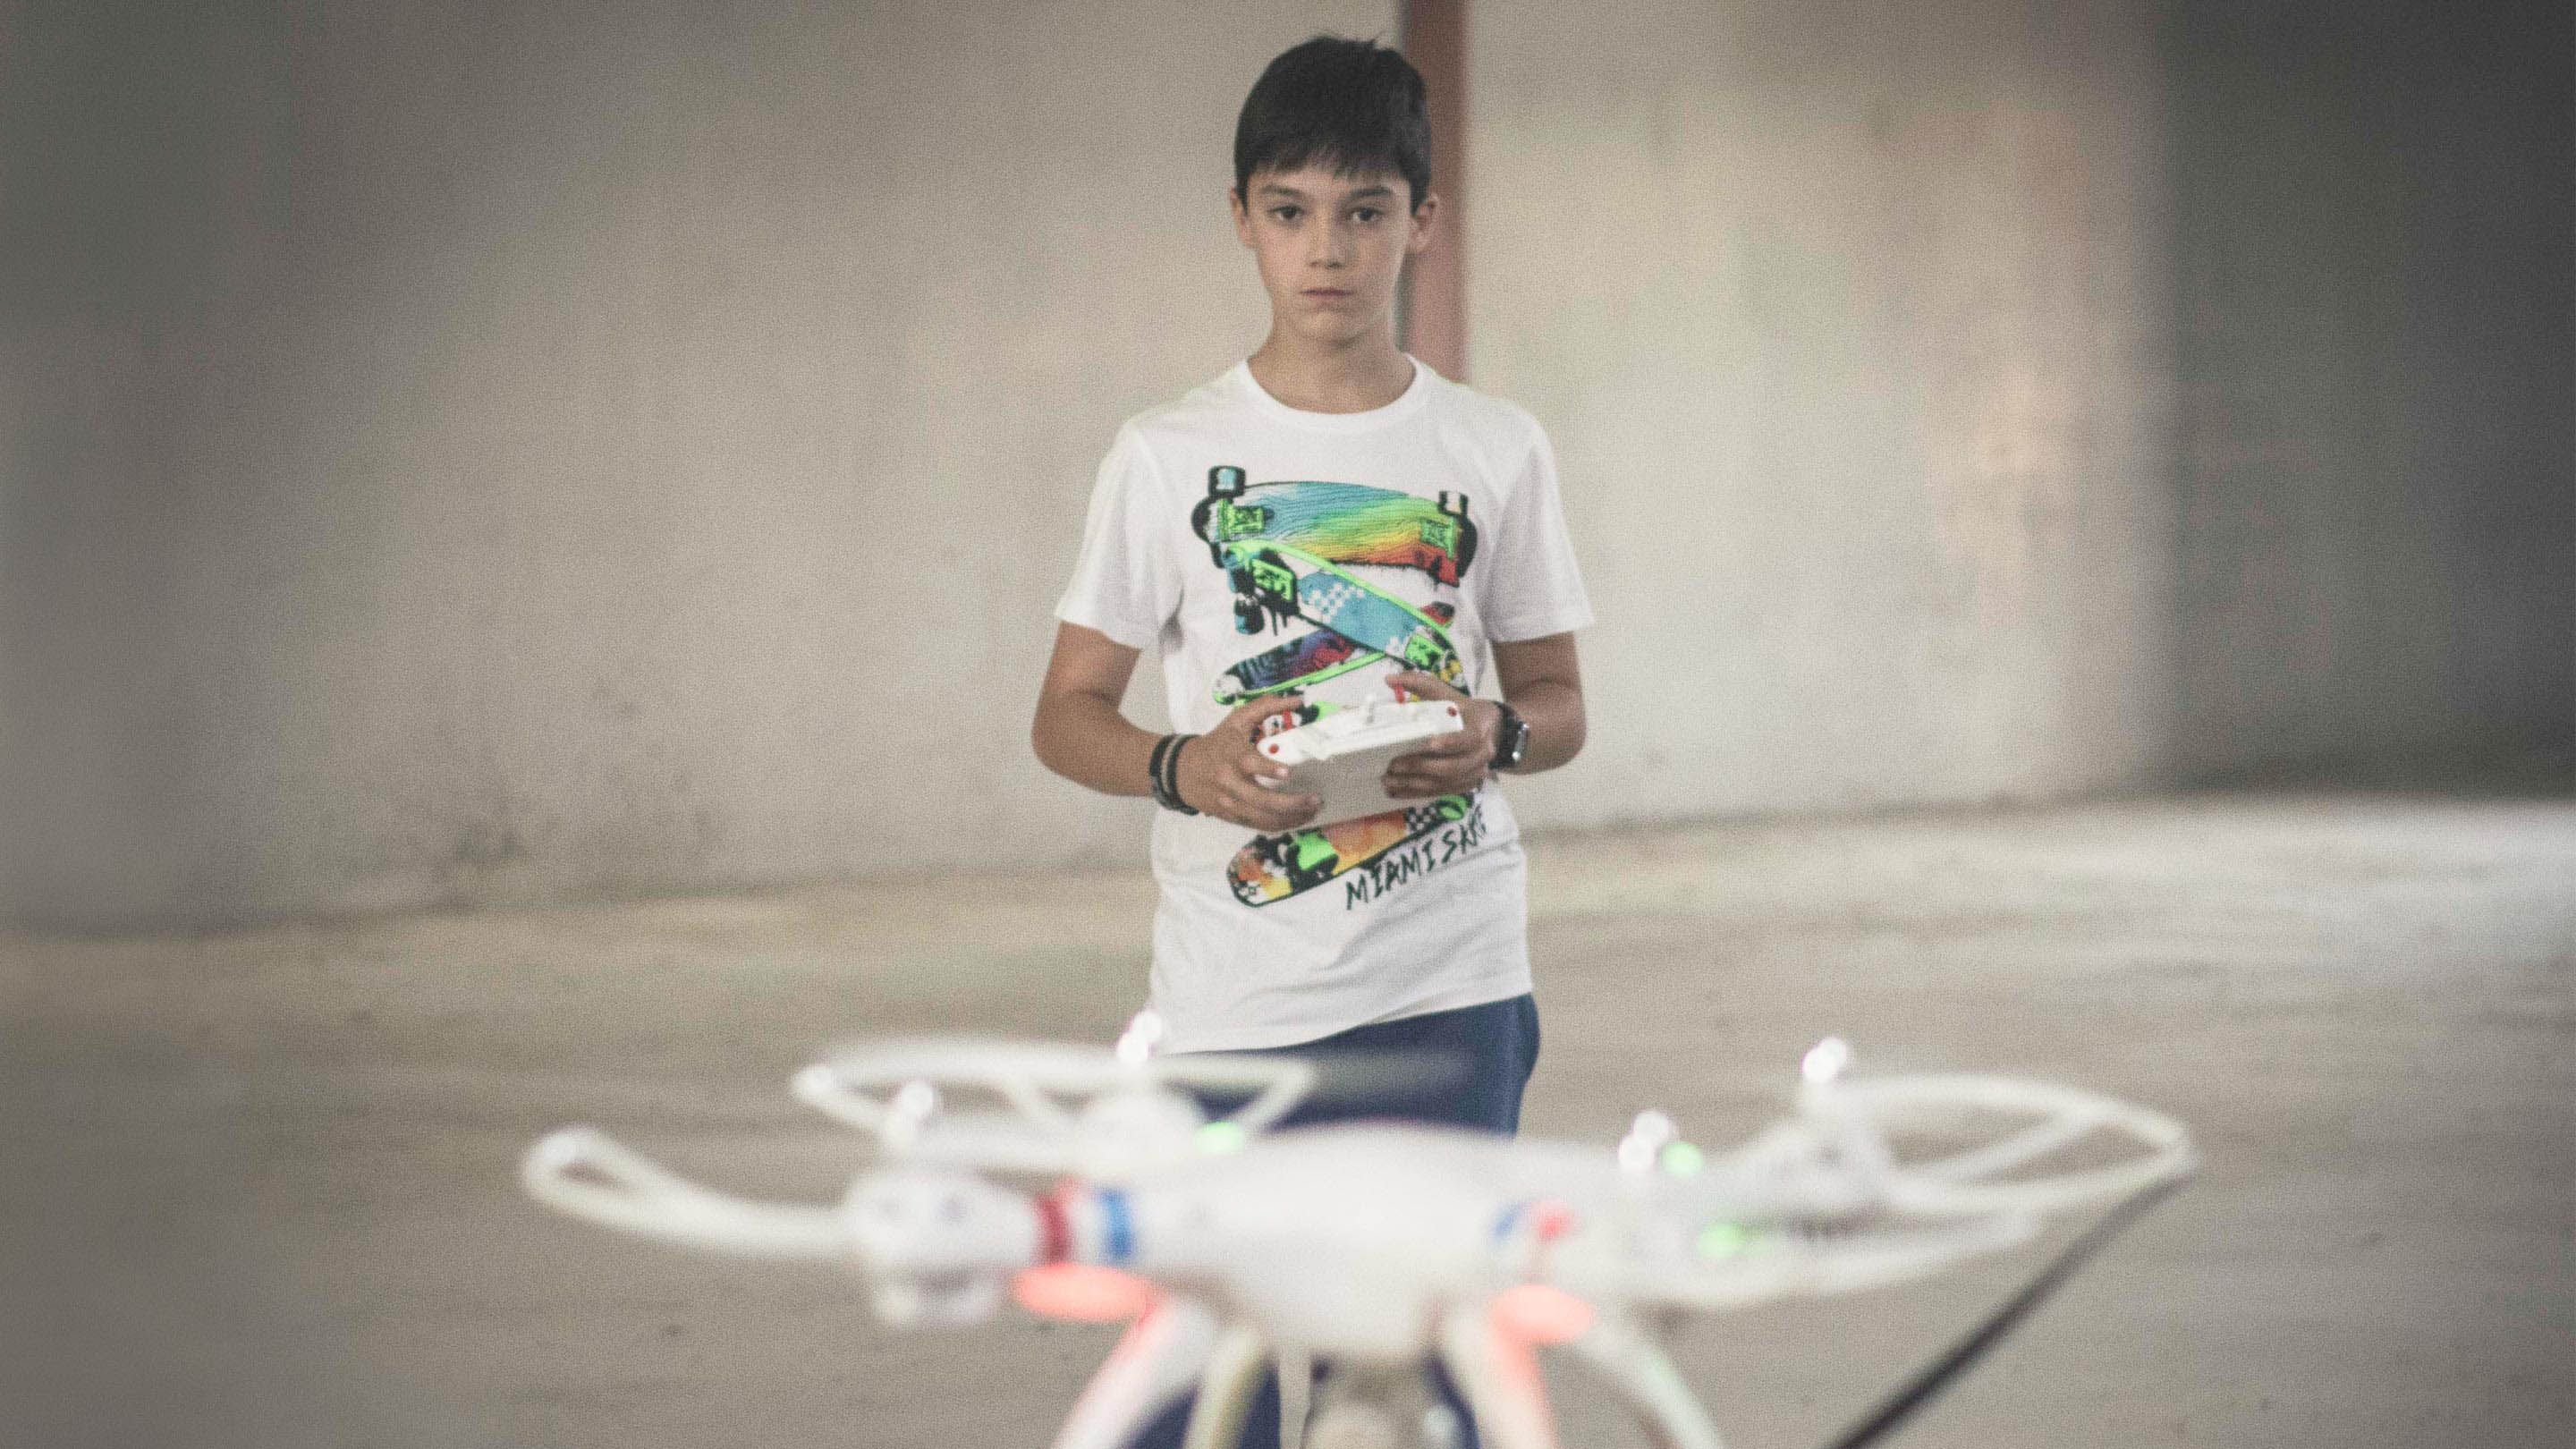 A young boy is standing in an empty cement building. He's playing with a flying, remote-operated drone.